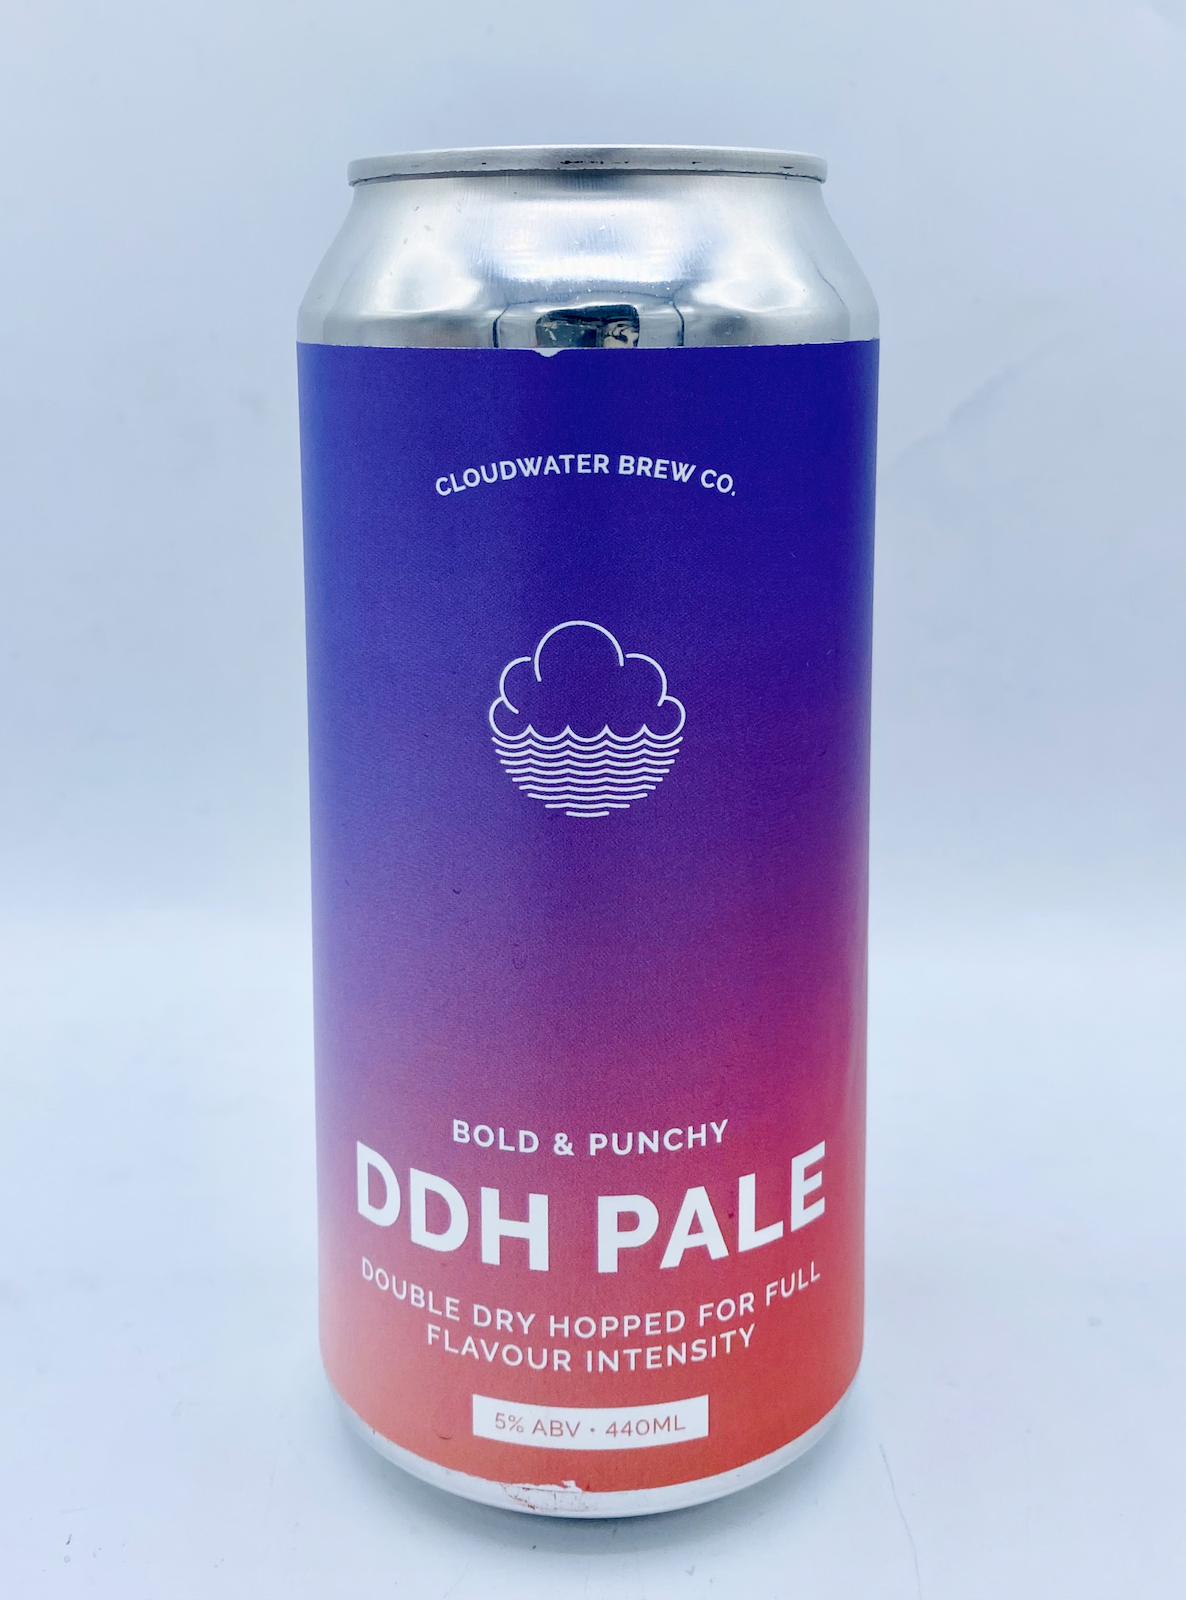 Cloudwater Brew Co. - DDH Pale 5%